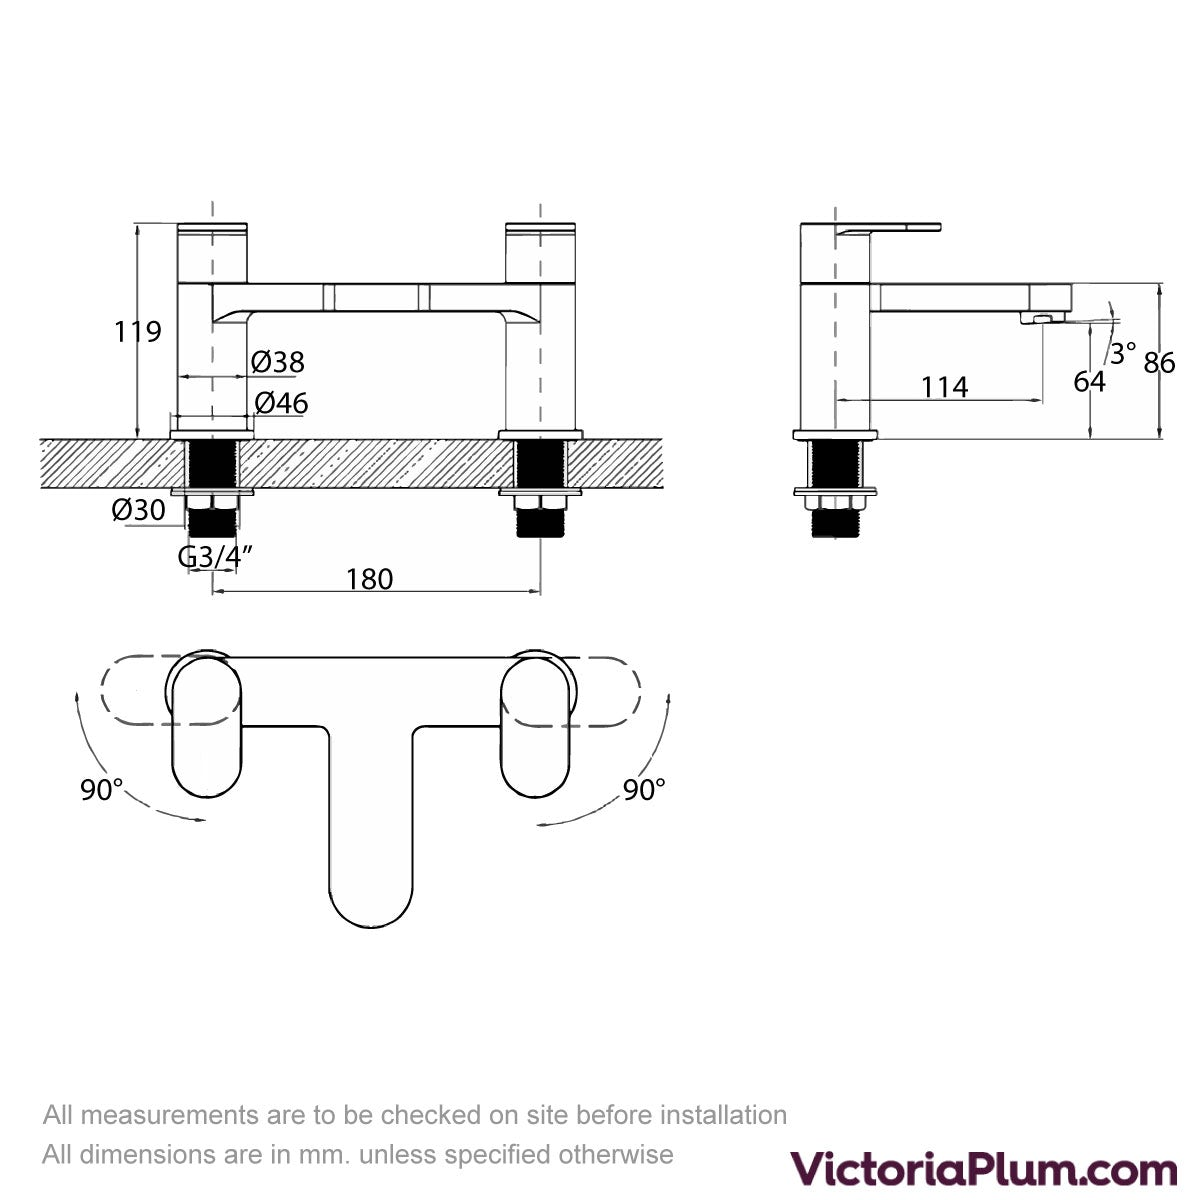 Dimensions for Kirke Curve bath mixer tap